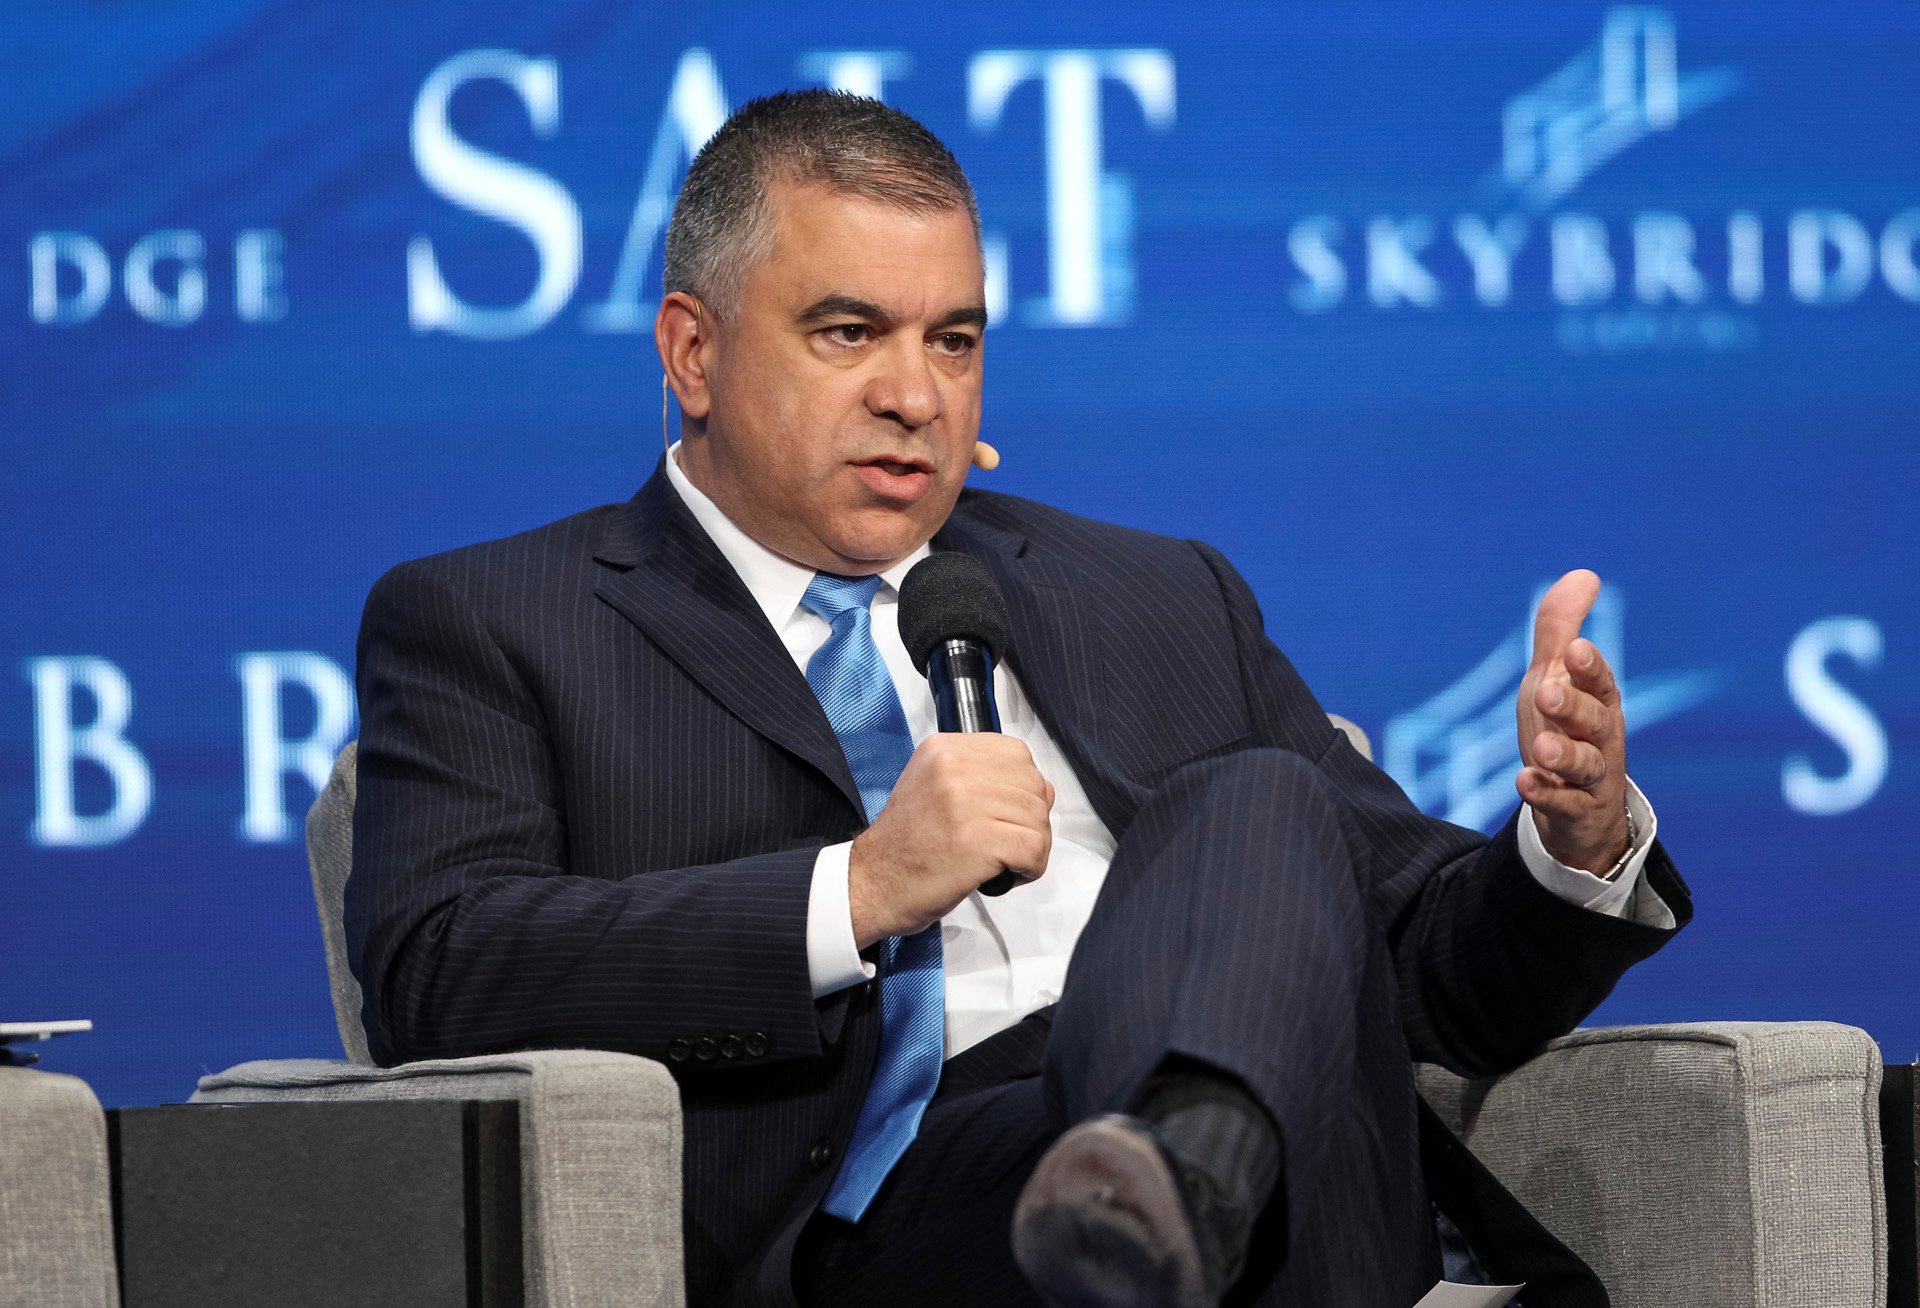 David Bossie, Donald Trump's deputy campaign manager and political activist, speaks during the SALT conference in Las Vegas